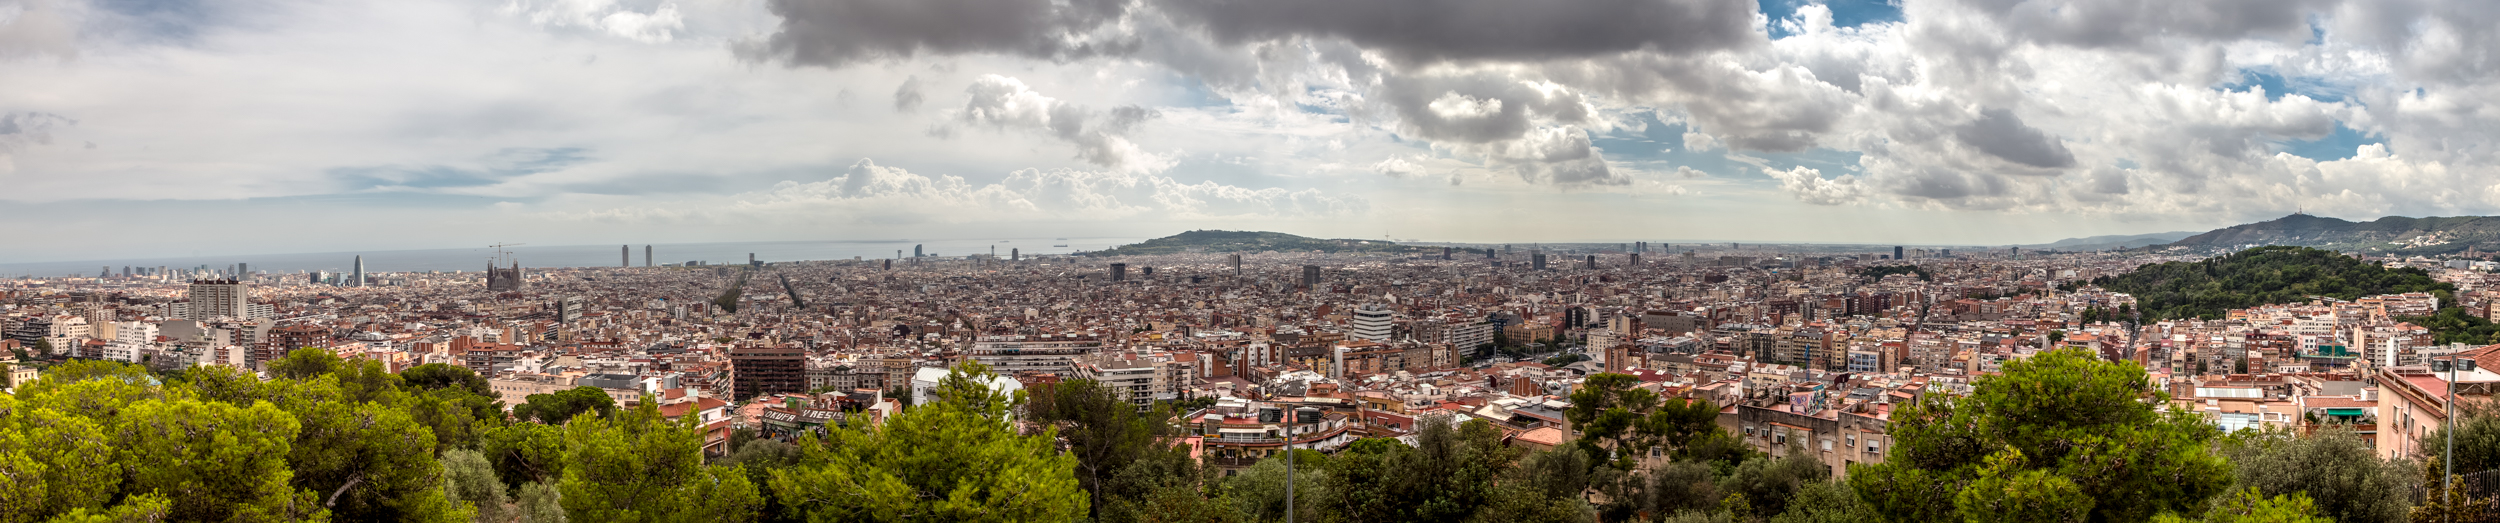 Panoramic view of part of Barcelona - 2487